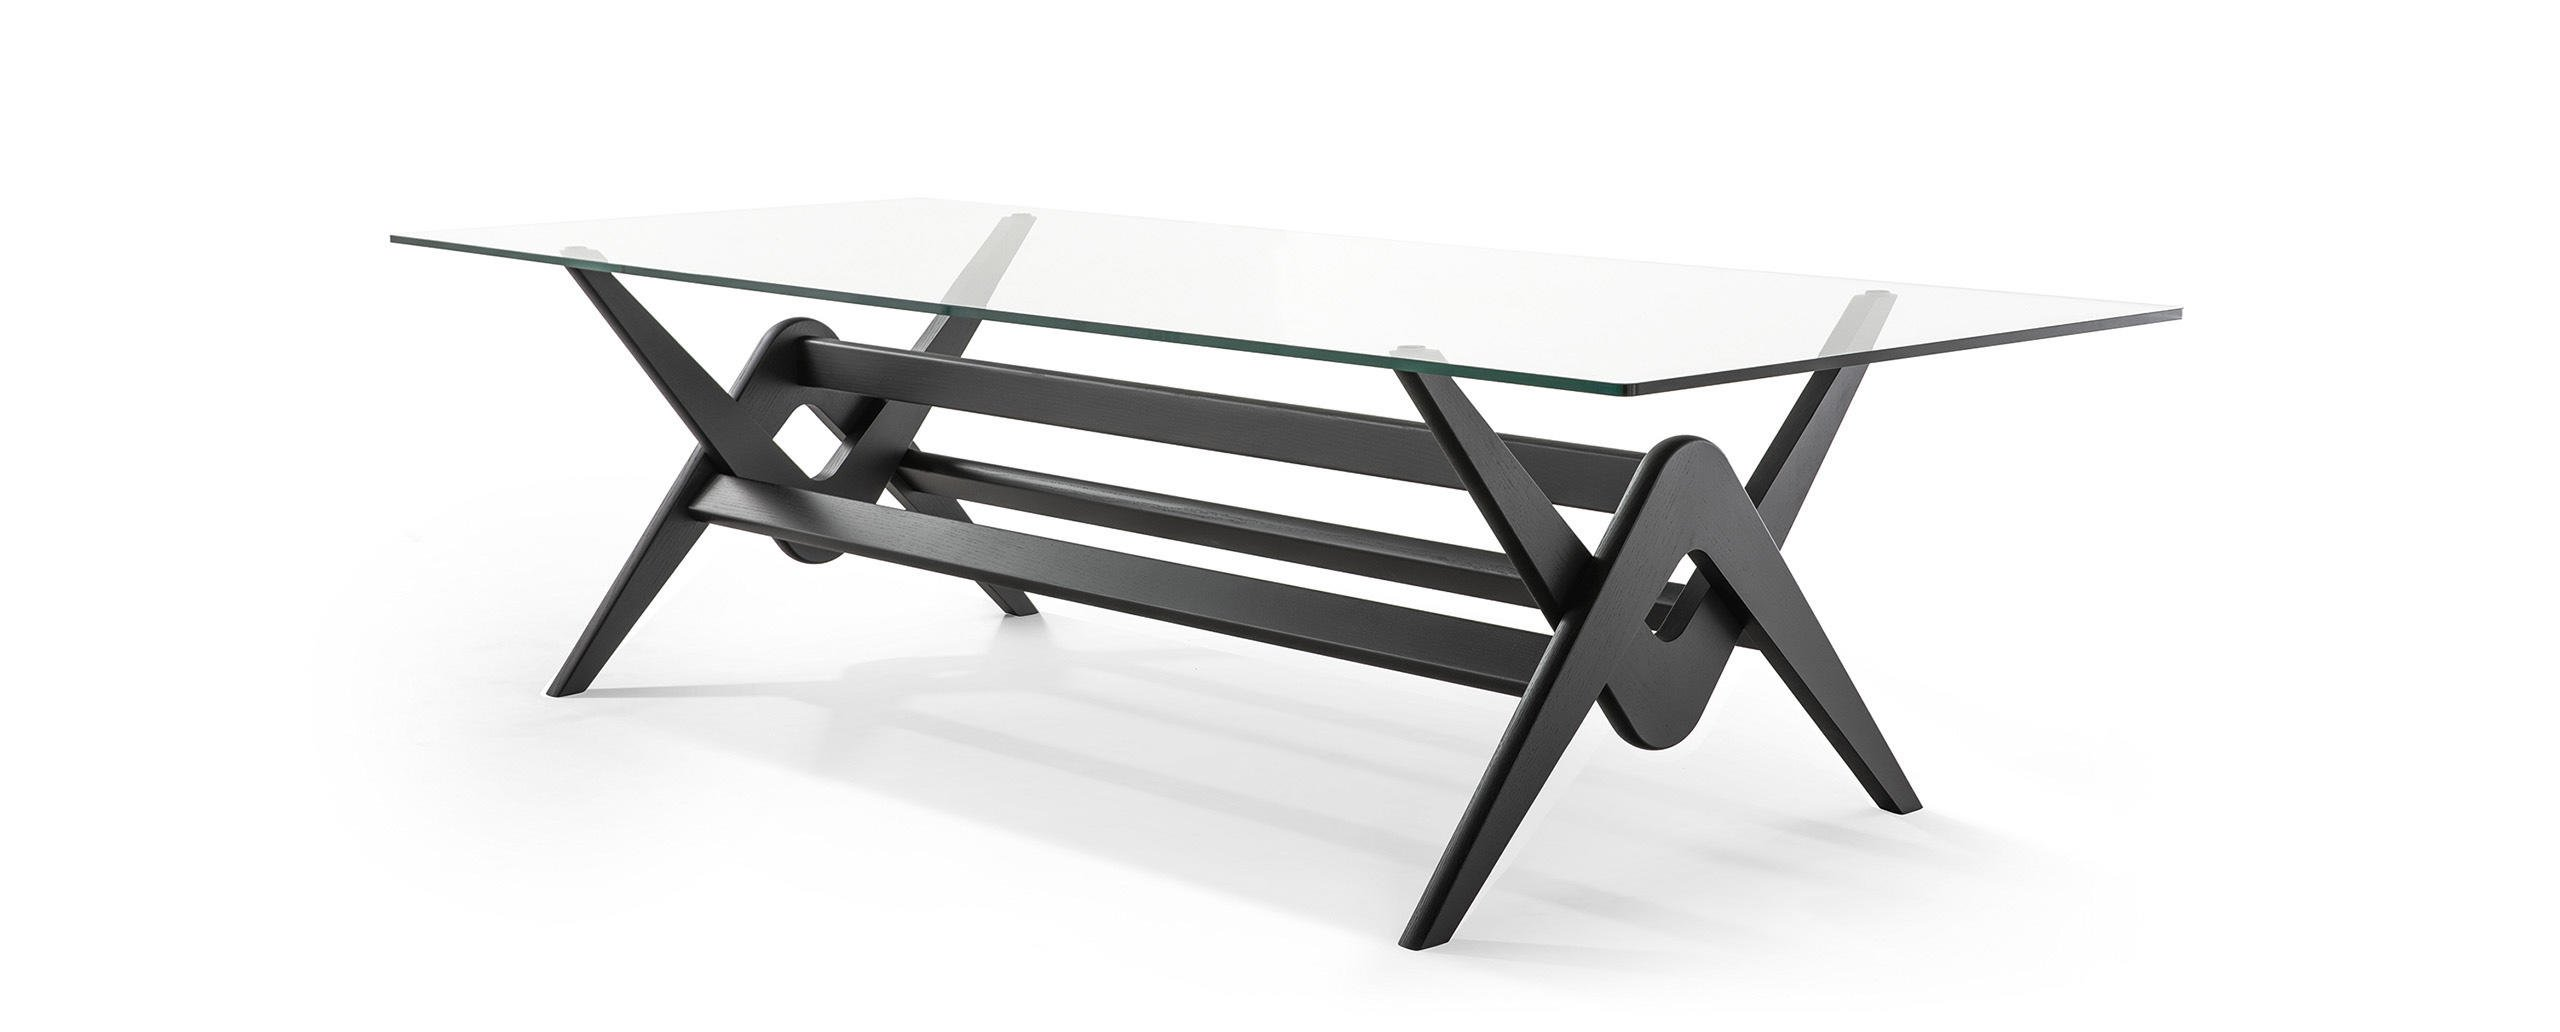 12_cassina_capitol_complex_table_hommage_o_pierre_jeanneret_cassina_rd (1)